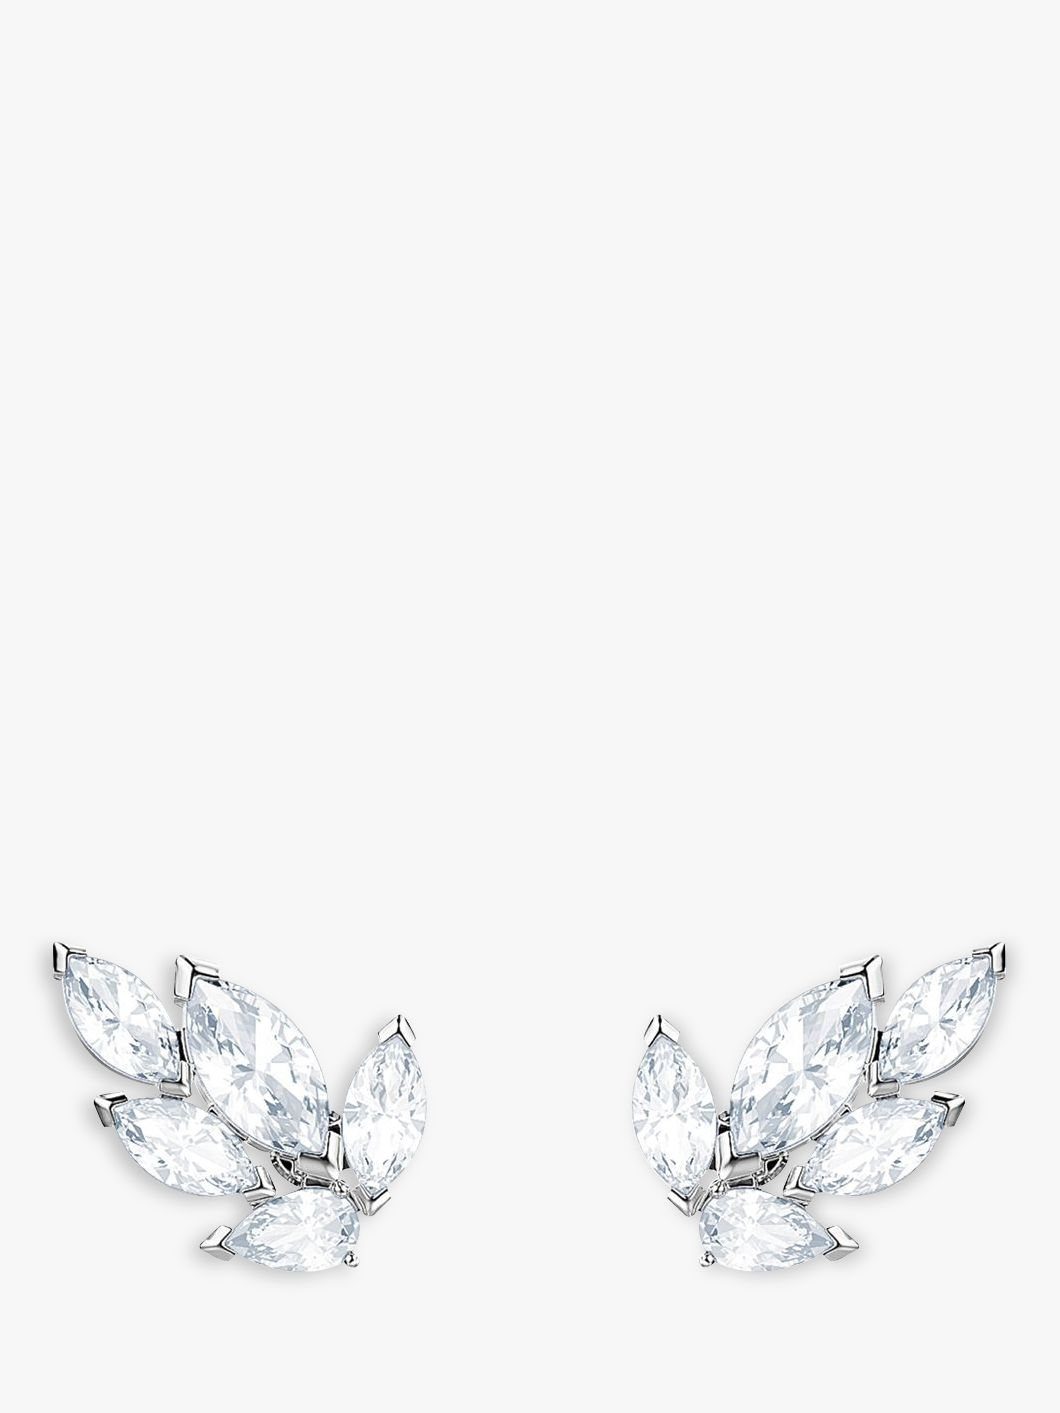 Swarovski Swarovski Louison Crystal Stud Earrings, Silver/Clear